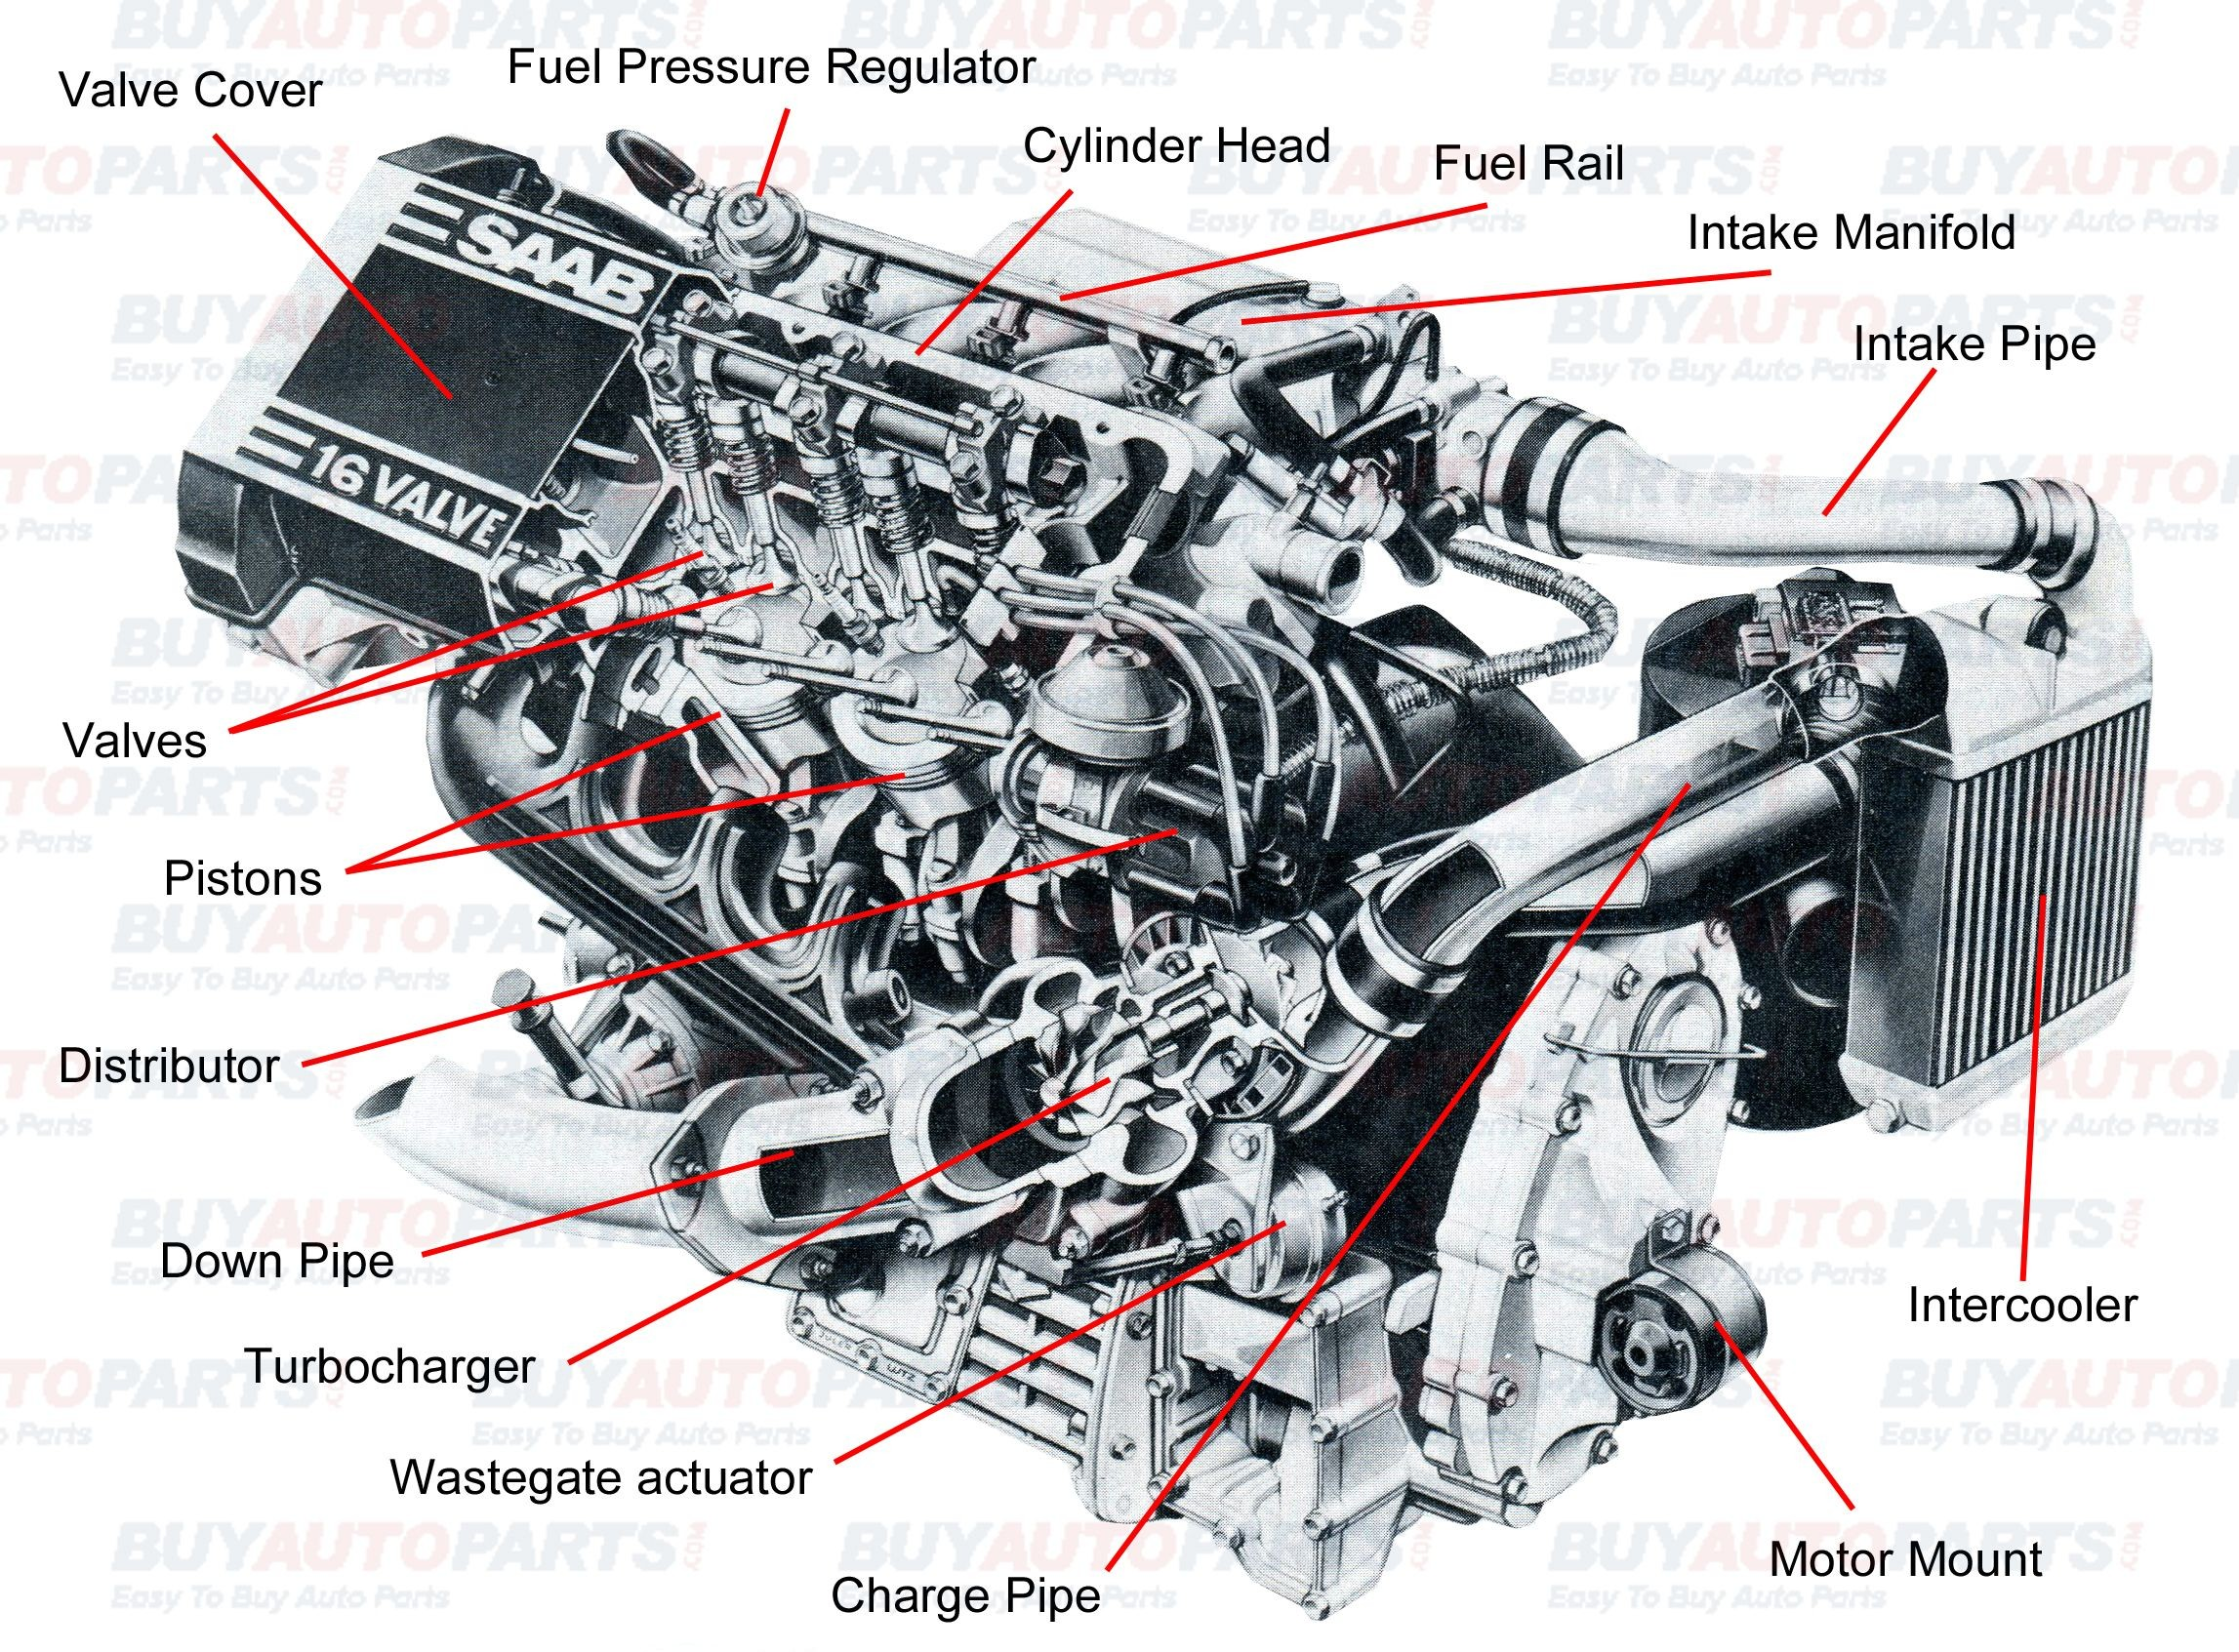 Diagram Of Car Body Parts Pin by Jimmiejanet Testellamwfz On What Does An Engine with Turbo Of Diagram Of Car Body Parts